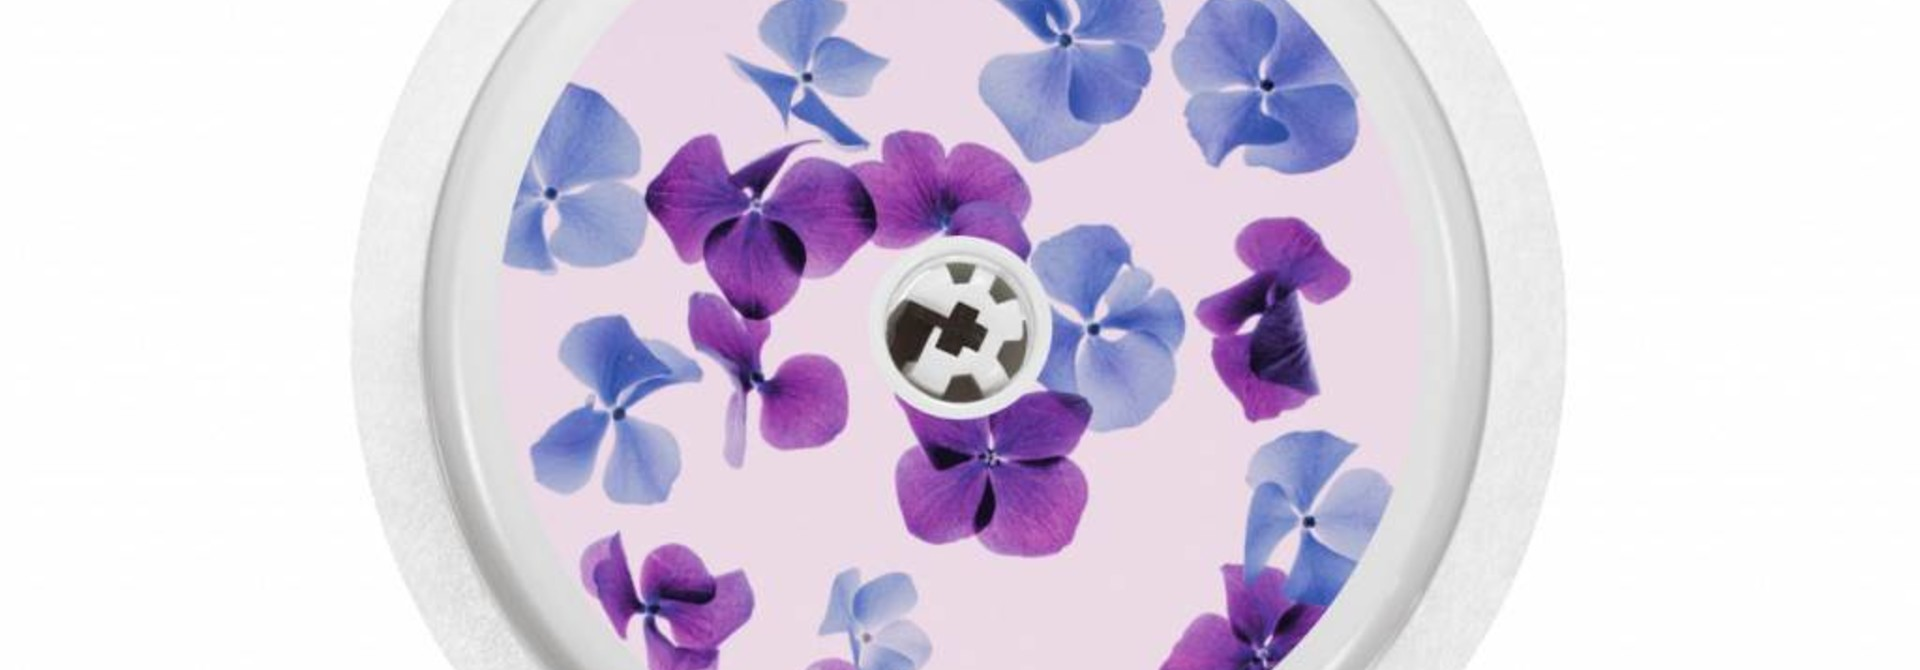 HYDRANGEA SENSOR STICKER - FreeStyle Libre